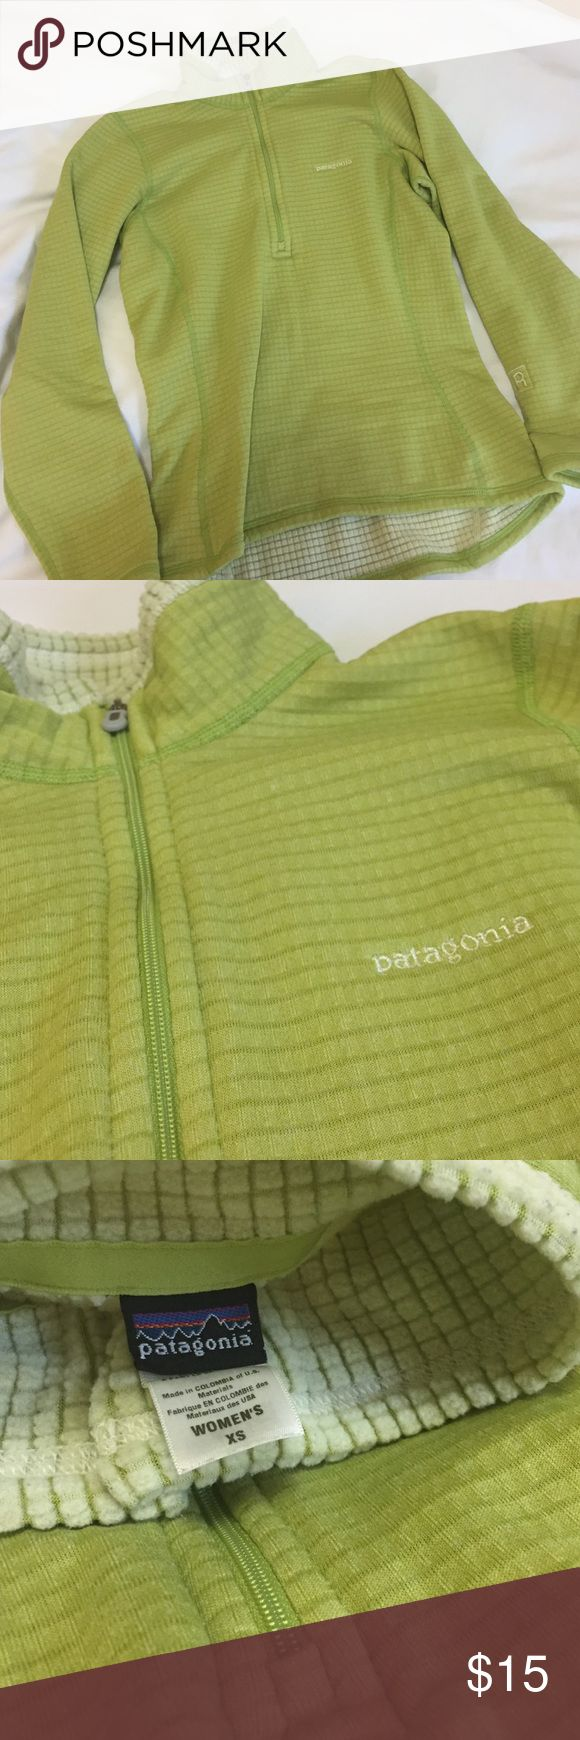 Patagonia Women's XS R1 quarter zip fleece EUC Lime green and oh so visible! R1 has a waffle fleece design that is warm and breathable. I have too many fleeces... closet clearance! Patagonia Jackets & Coats